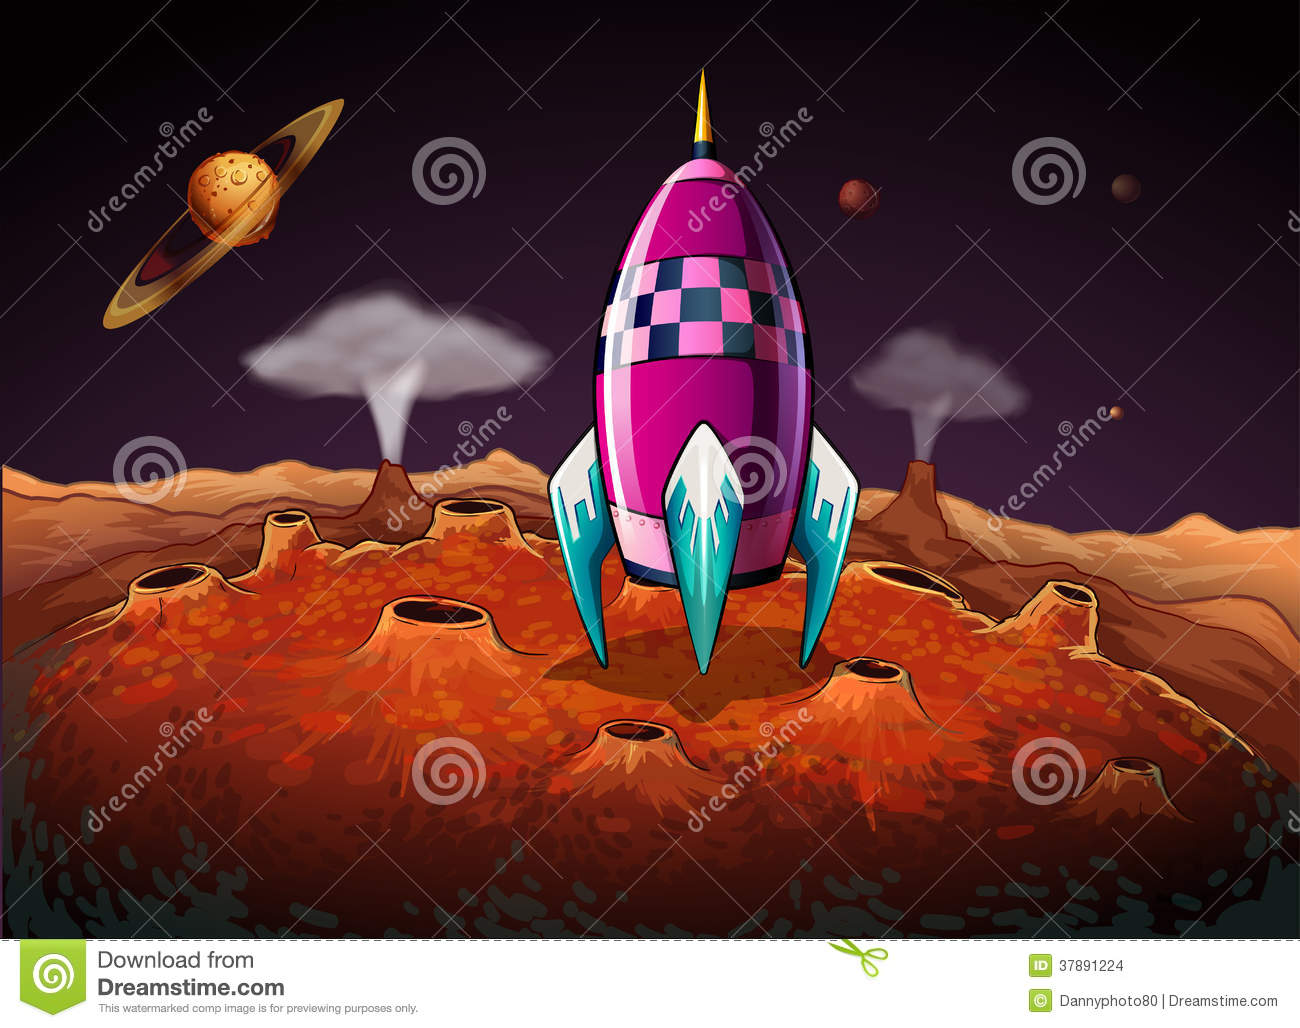 A rocket at the outerspace near the planets